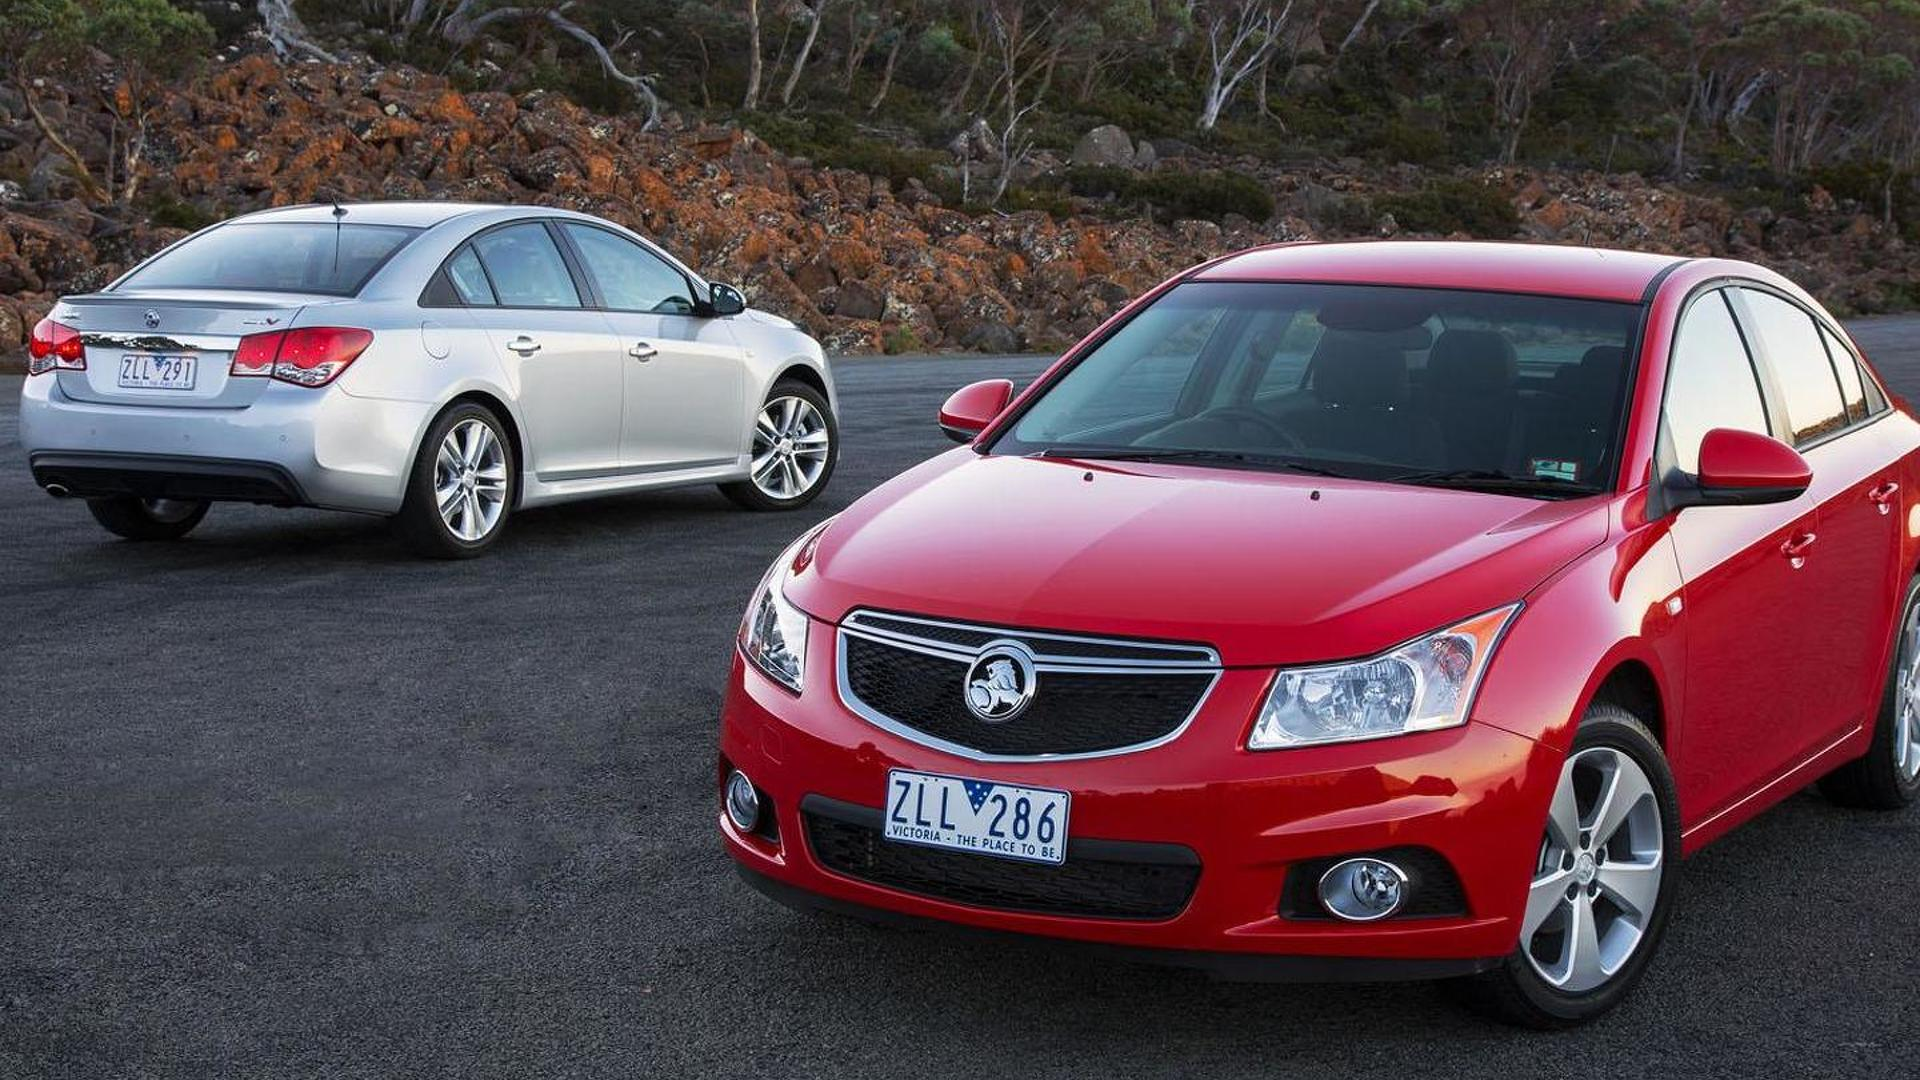 2014 Holden Cruze introduced, offers a new turbocharged engine